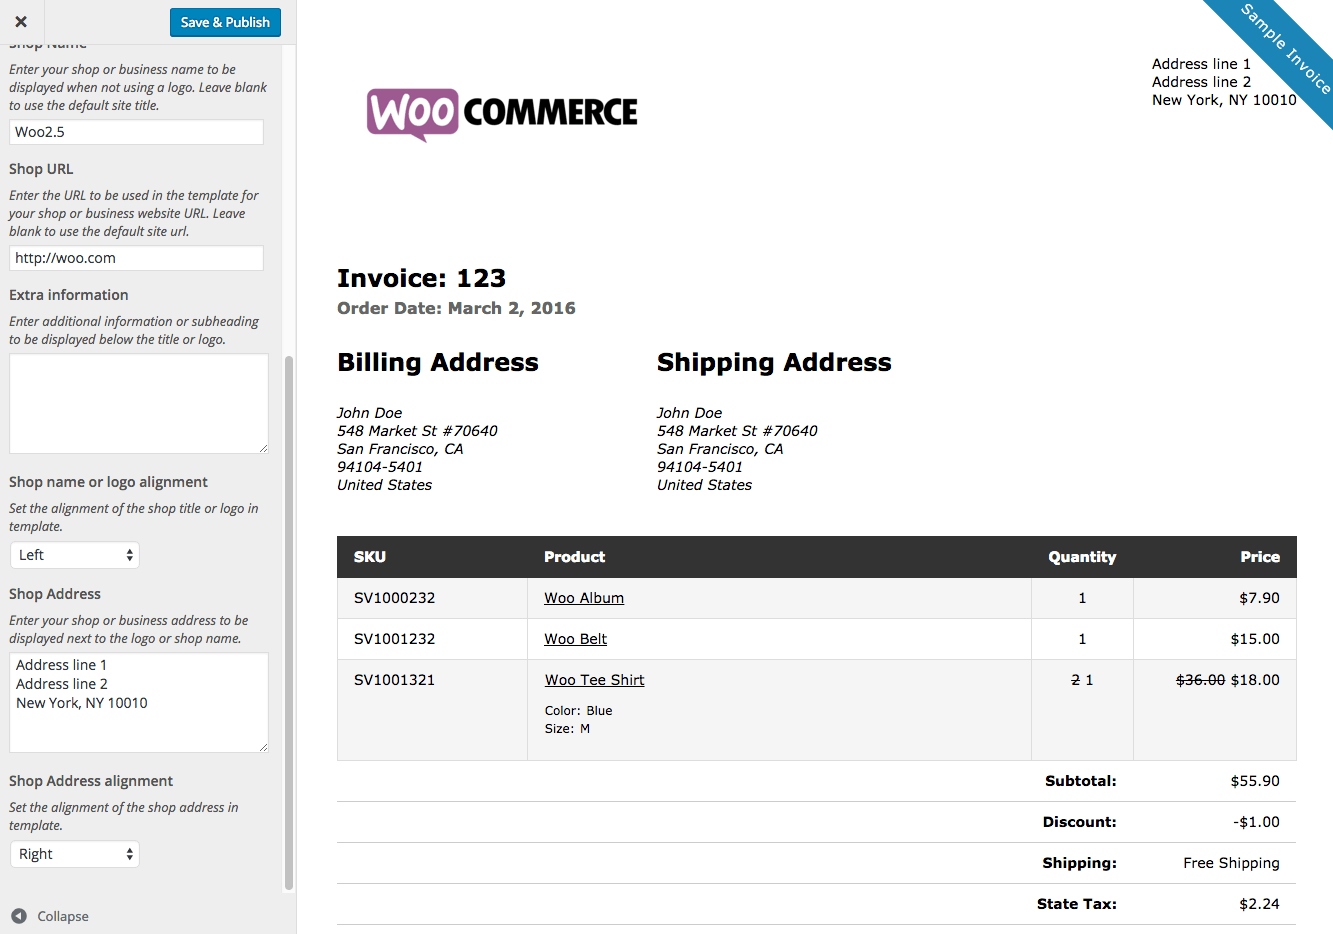 Howcanigettallerus  Winning Woocommerce Print Invoices Amp Packing Lists  Woocommerce Docs With Exciting Woocommerce Print Invoices  Packing Lists Customizer With Extraordinary Invoice Template For Services Also Commercial Invoice For Export In Addition Car Invoice Prices By Vin And Free Auto Repair Invoice Software As Well As Sample Invoice Forms Additionally Honda Accord  Invoice Price From Docswoocommercecom With Howcanigettallerus  Exciting Woocommerce Print Invoices Amp Packing Lists  Woocommerce Docs With Extraordinary Woocommerce Print Invoices  Packing Lists Customizer And Winning Invoice Template For Services Also Commercial Invoice For Export In Addition Car Invoice Prices By Vin From Docswoocommercecom